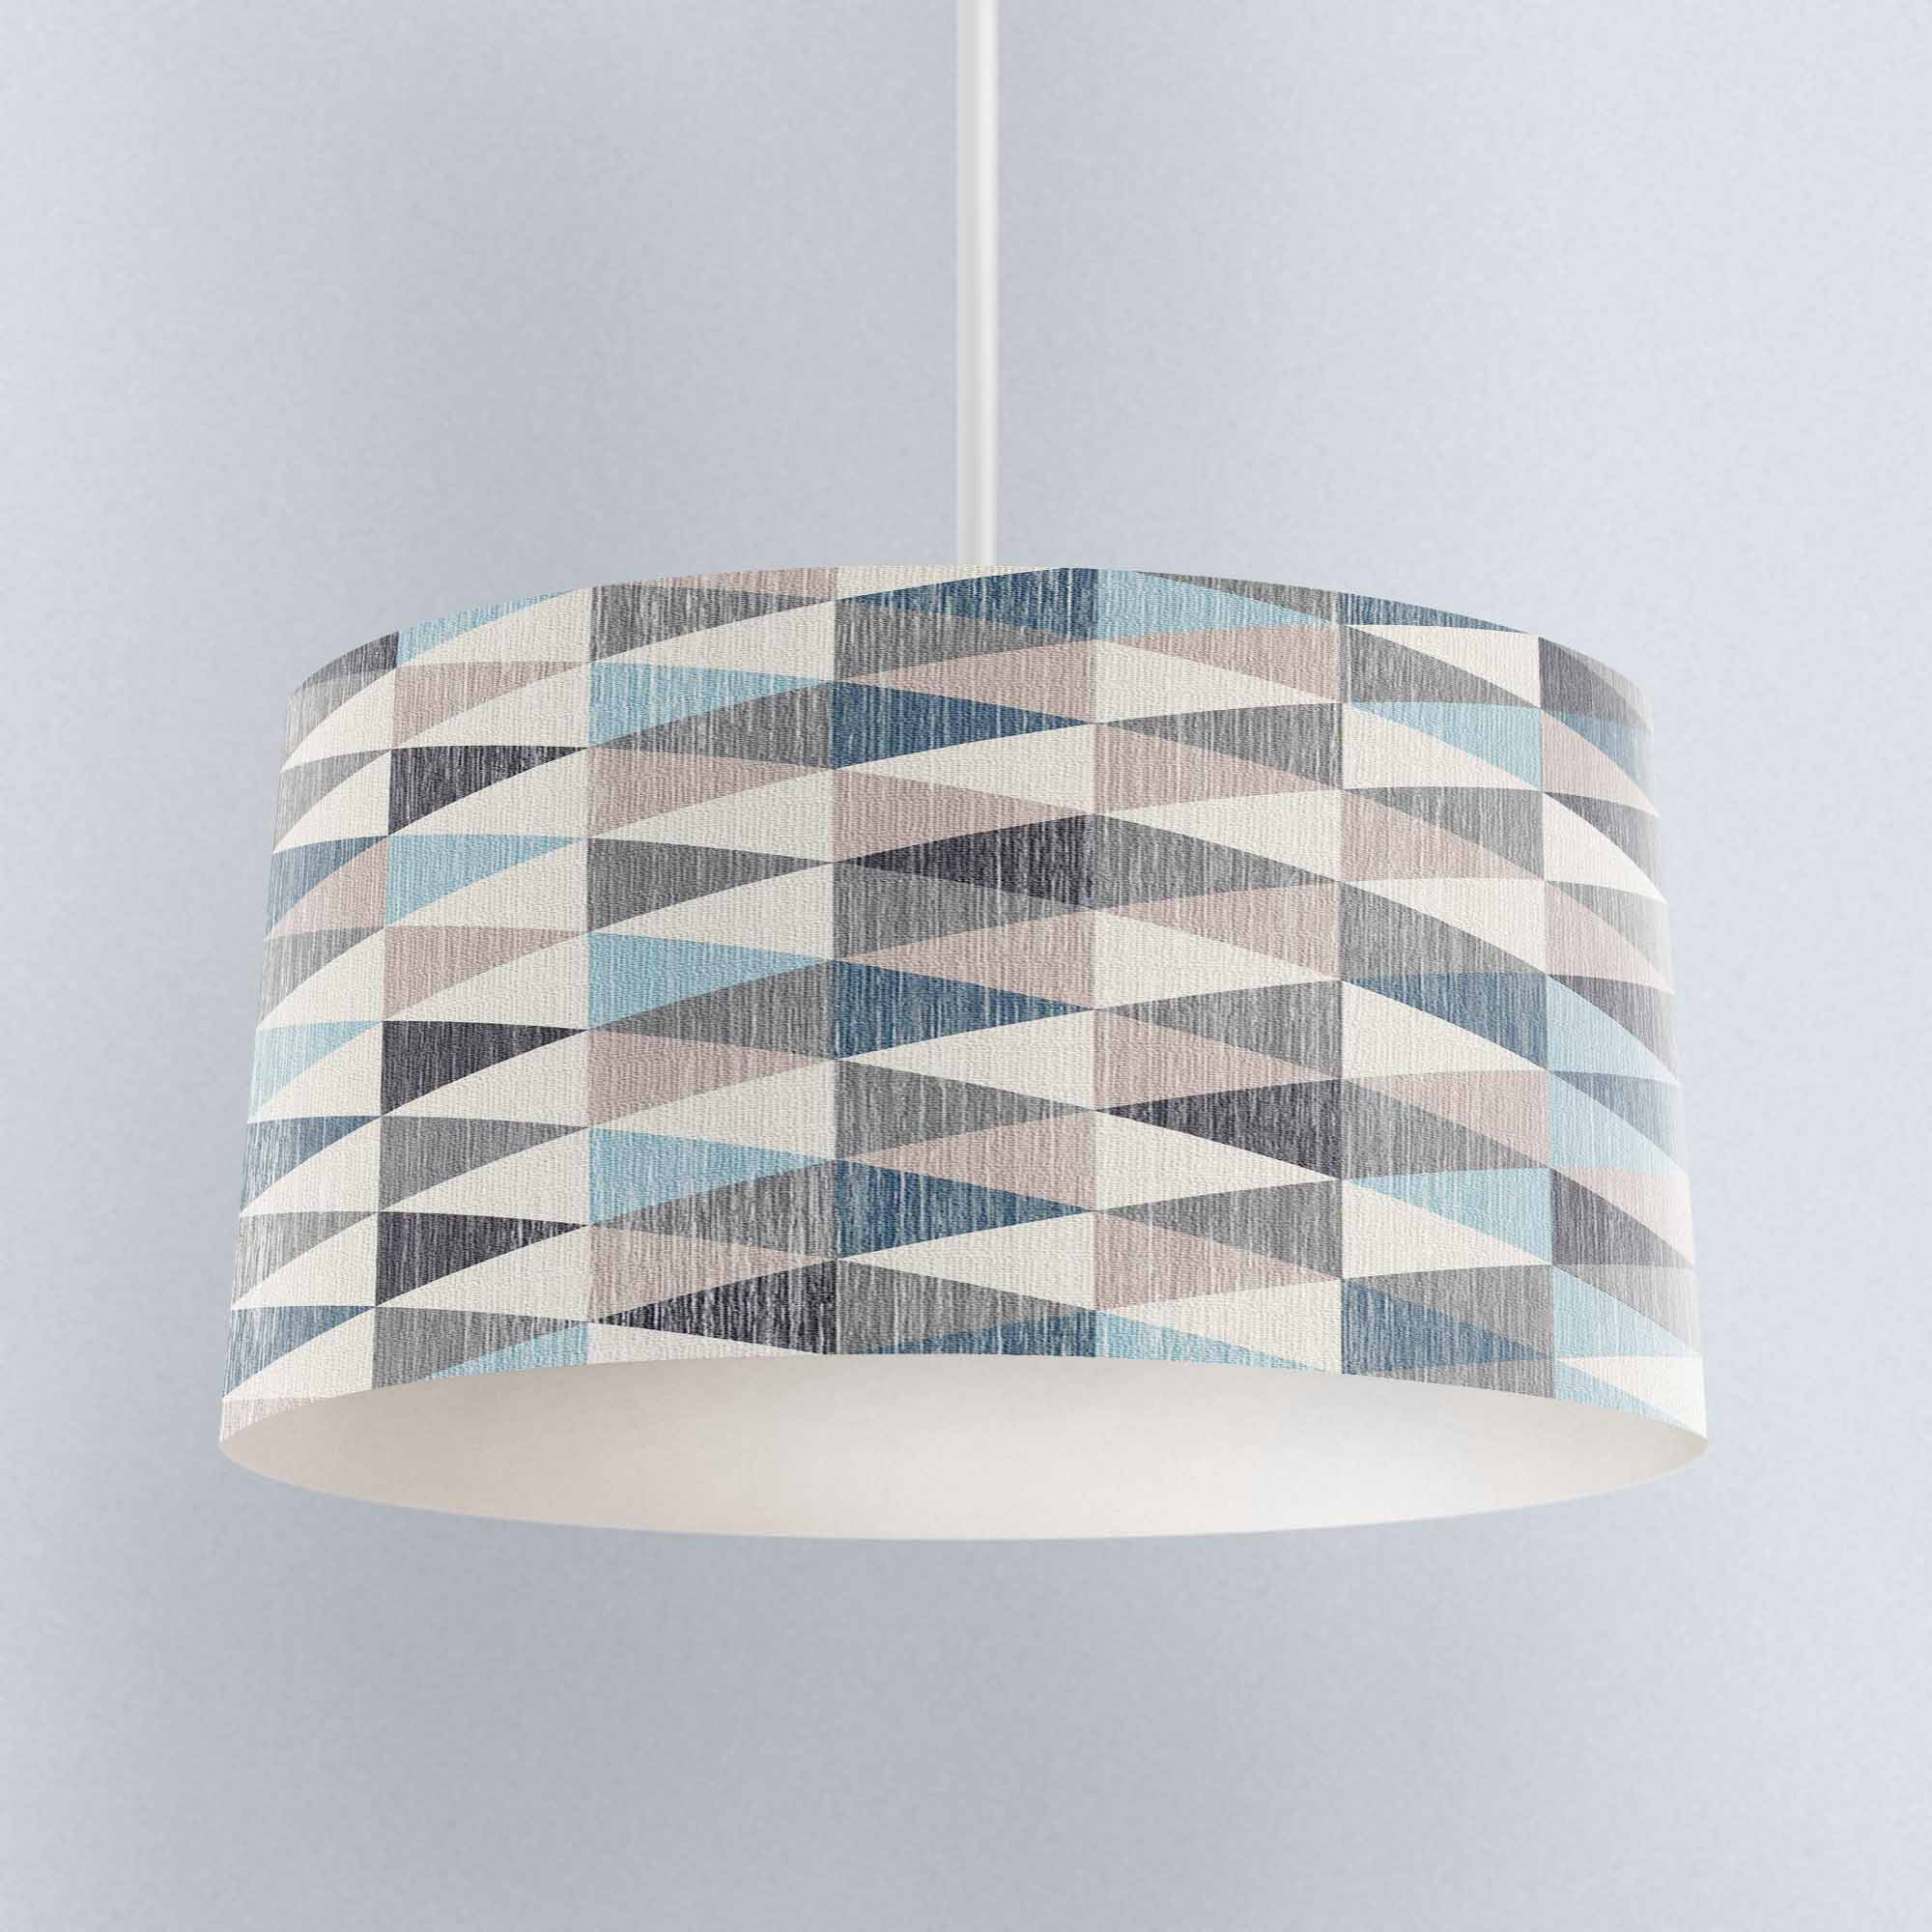 Else Blue Gray Triangle Geometric Floral Digital Printed Fabric Chandelier Lamp Drum Lampshade Floor Ceiling Pendant Light Shade Lamp Covers Shades Aliexpress